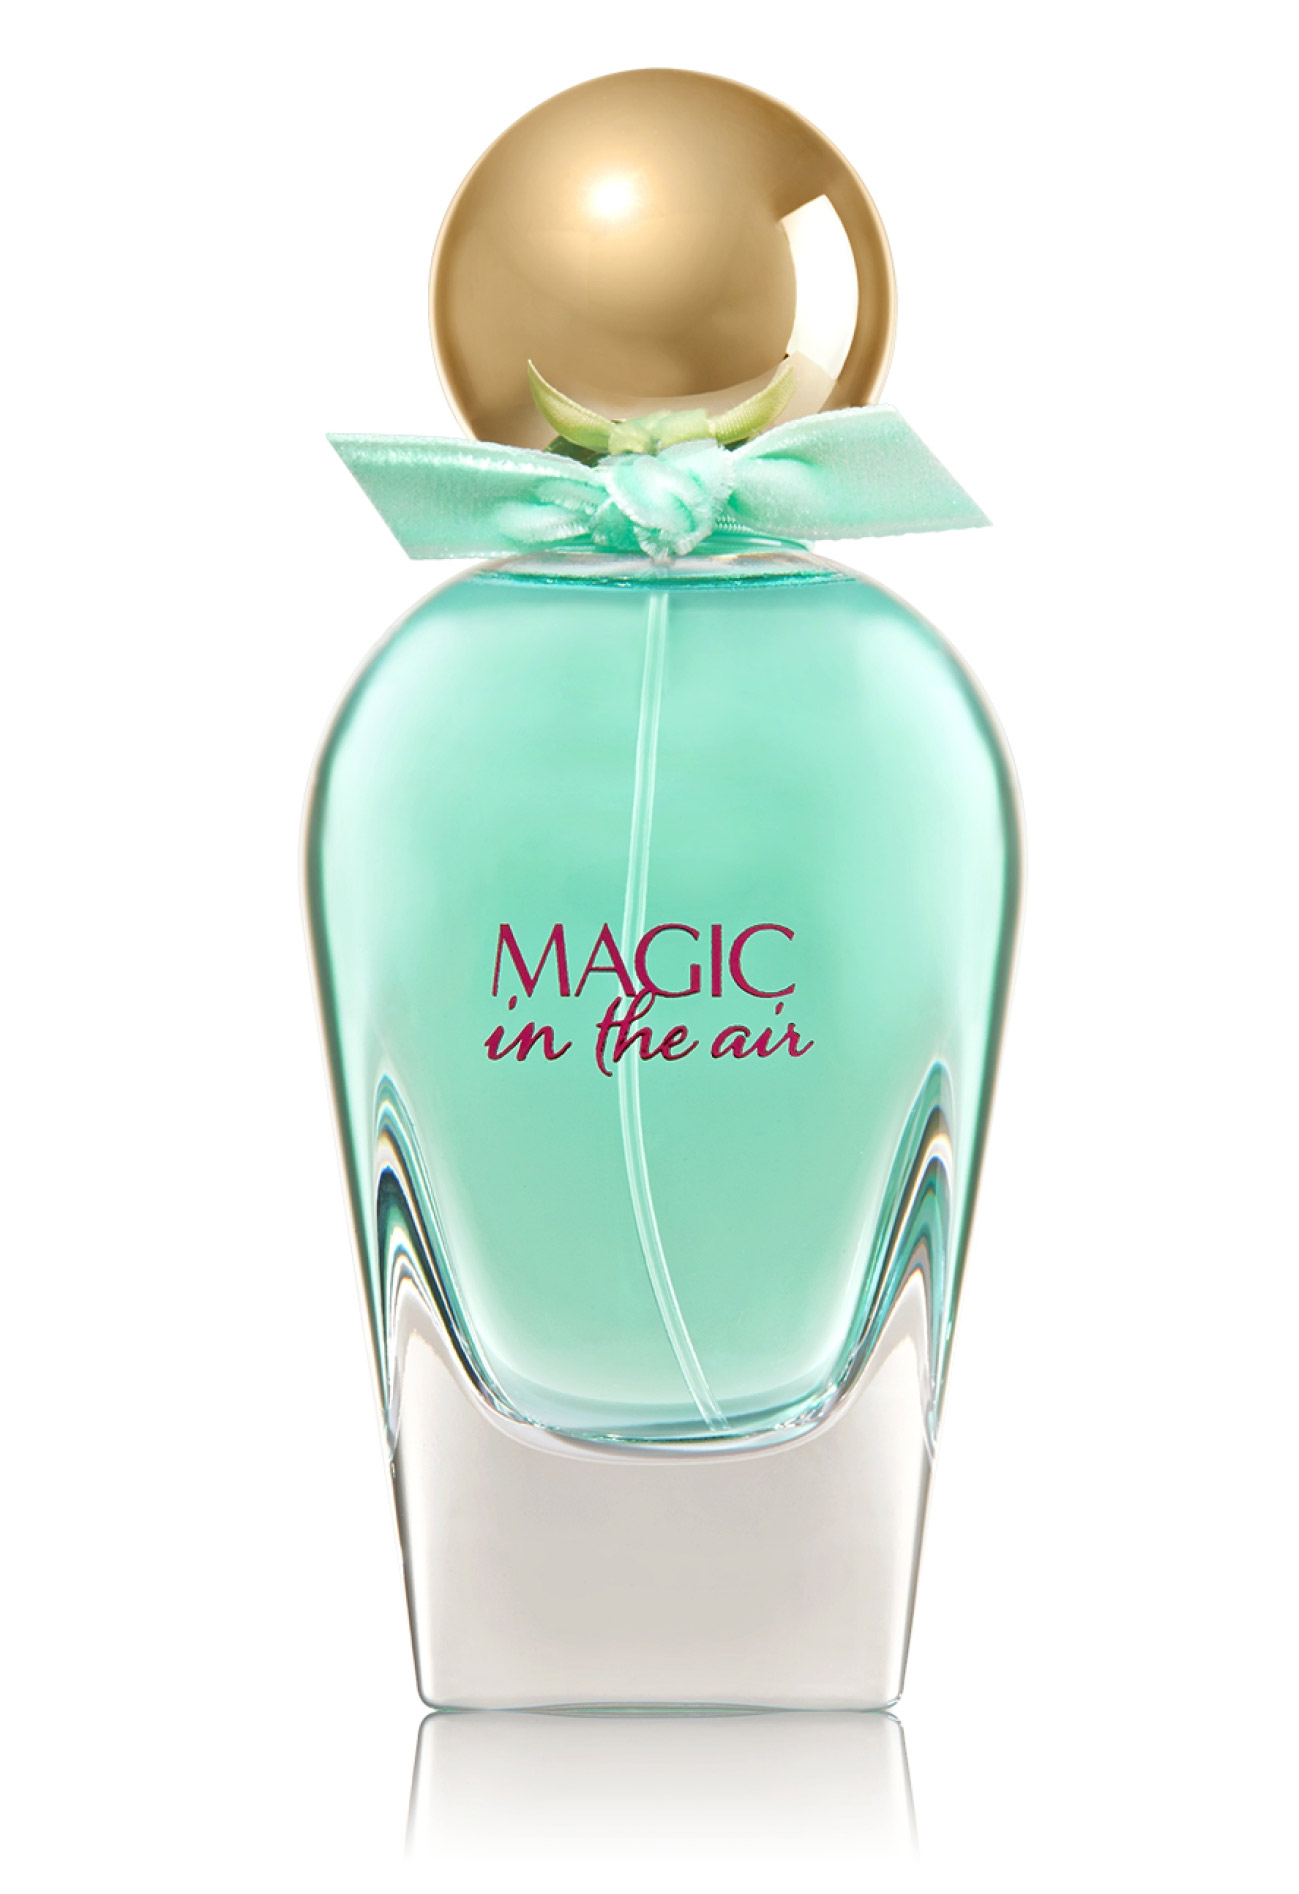 Magic in the air bath and body works perfume a new for Bathroom body works